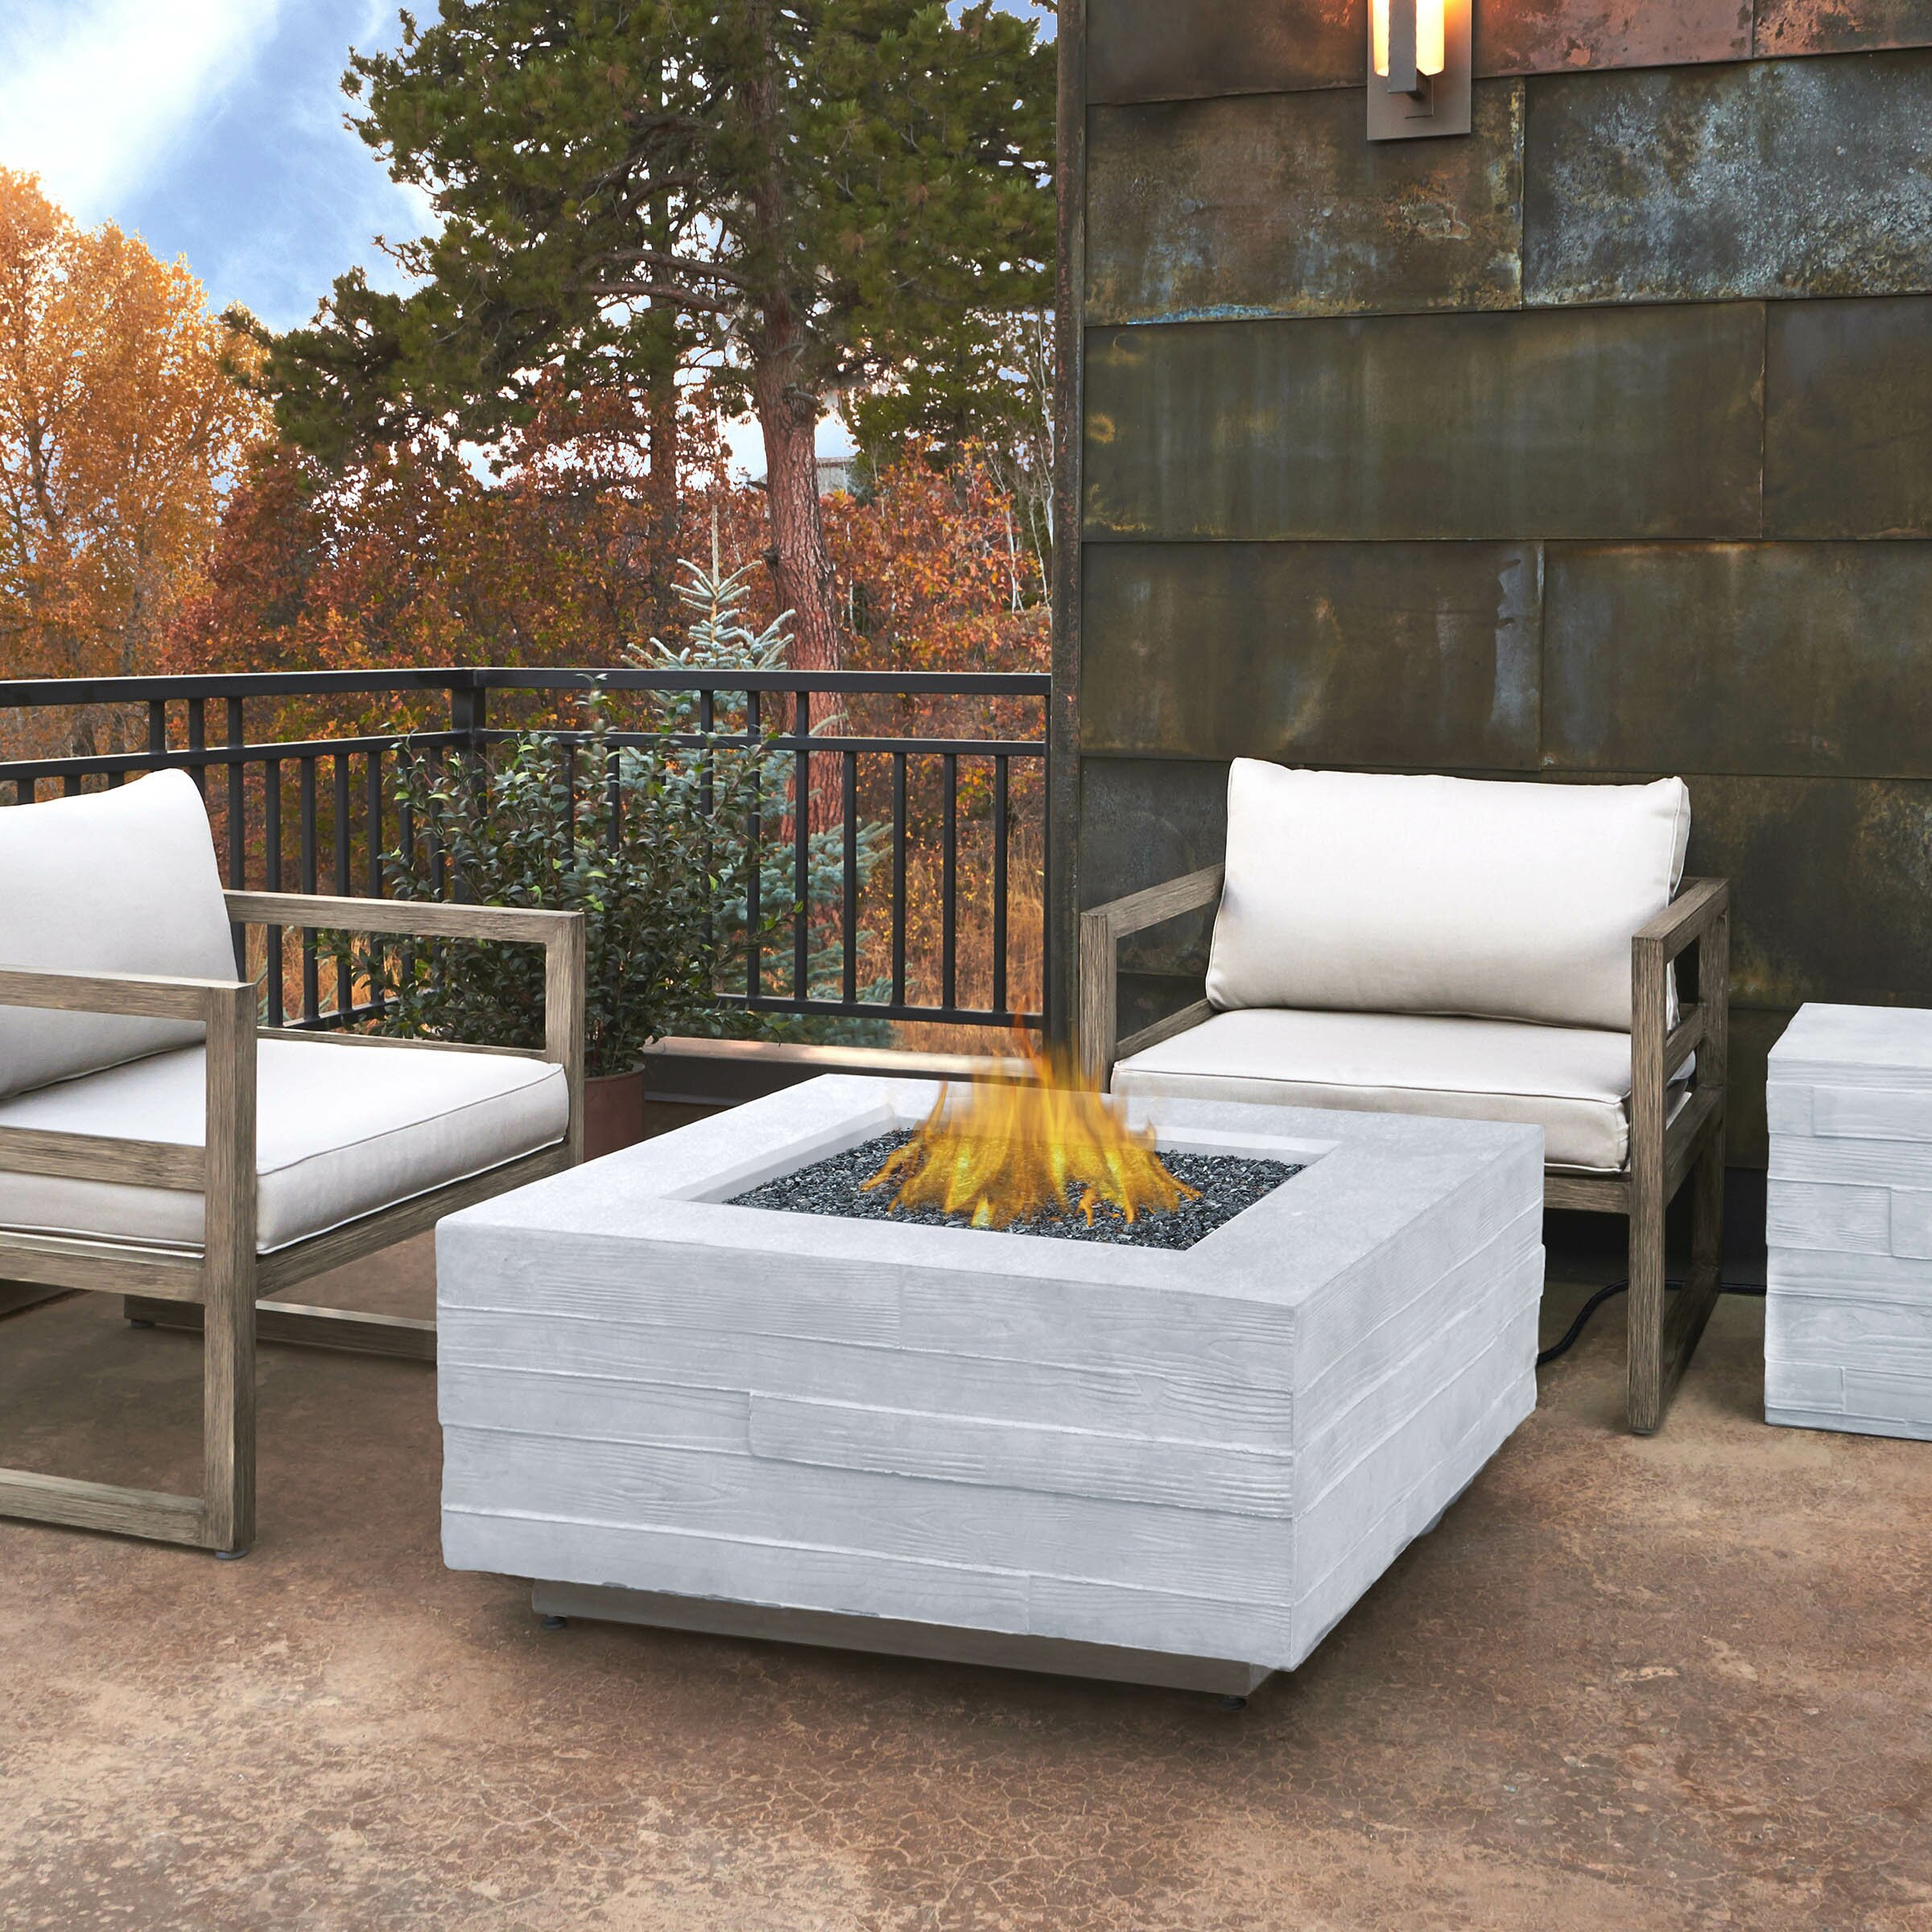 Real Flame Board Form Propane Outdoor Fire Pit Table ... on Outdoor Fireplace Pit id=87999